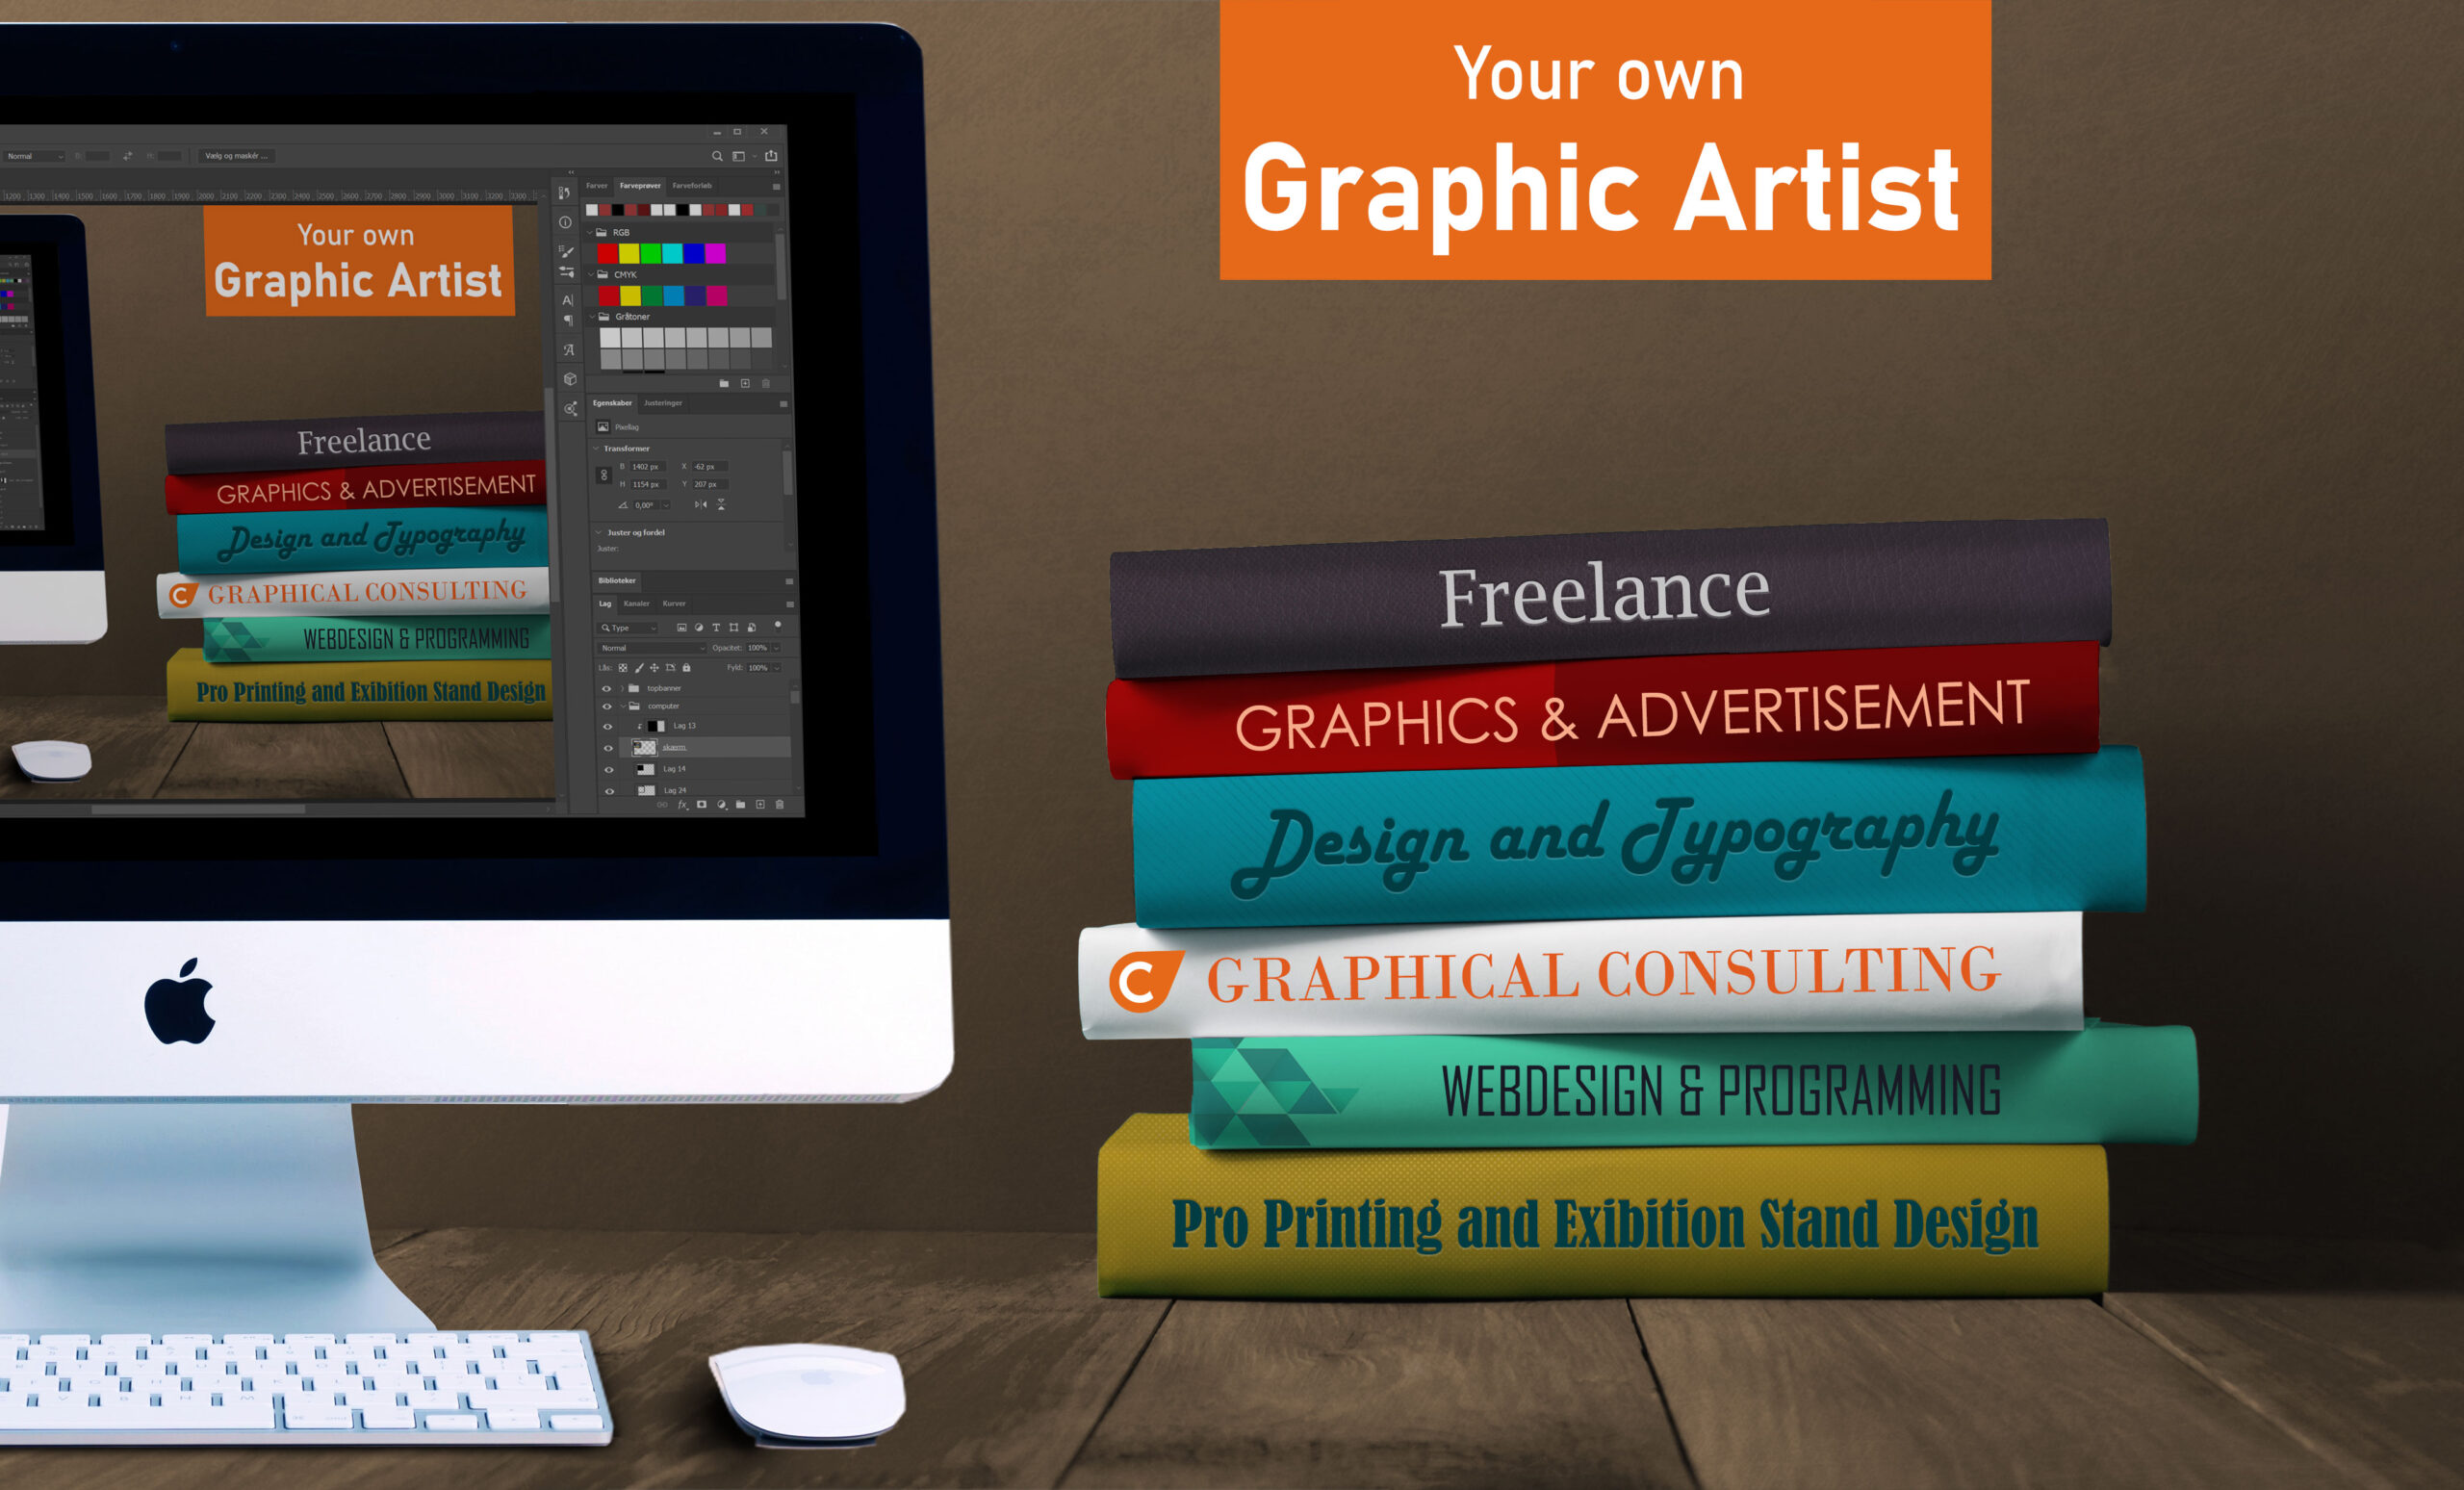 Freelance Graphic Artist